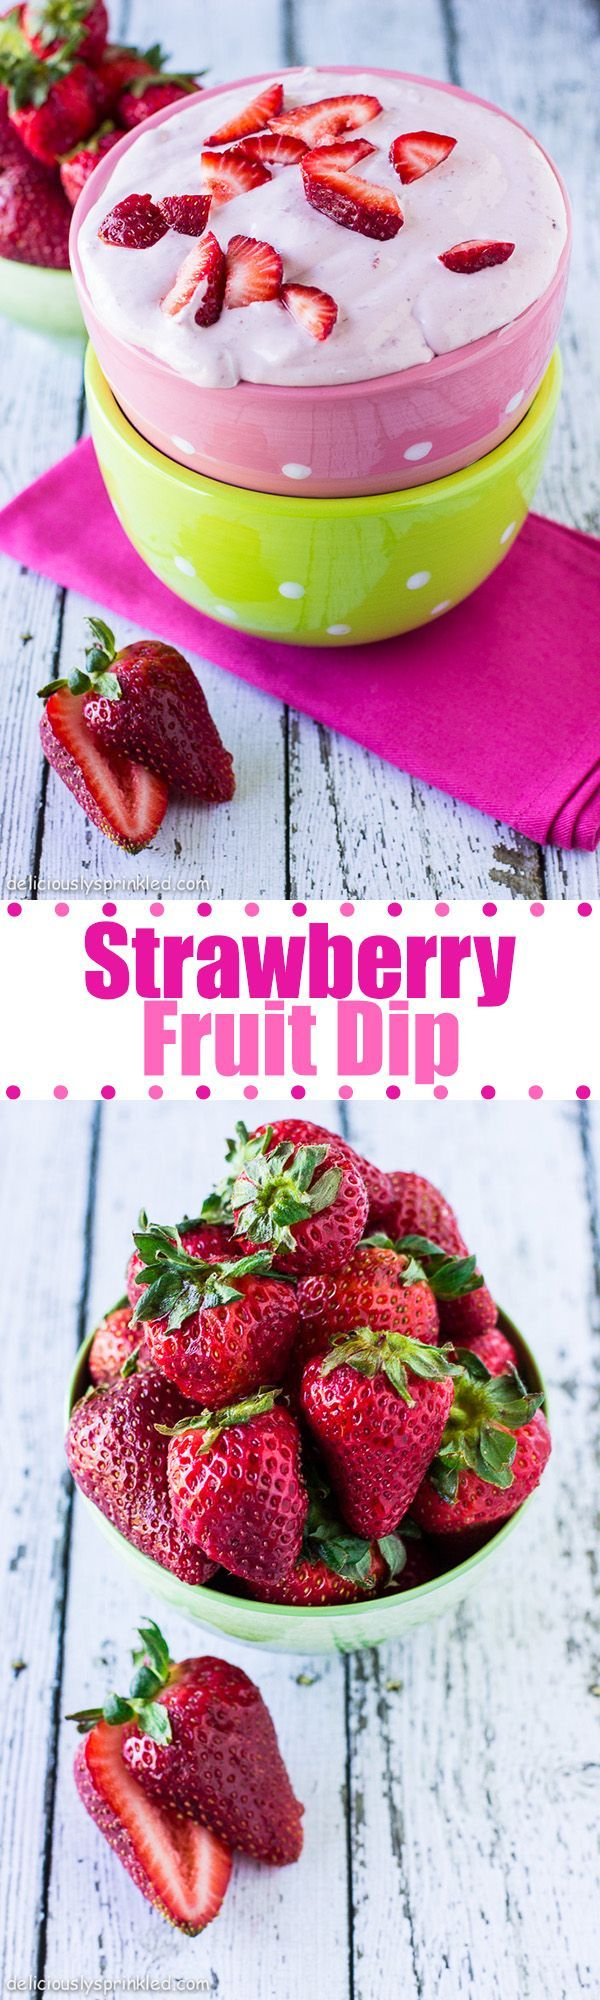 Strawberry Fruit Dip- always a HUGE hit at a BBQ party! It's so easy to make too...